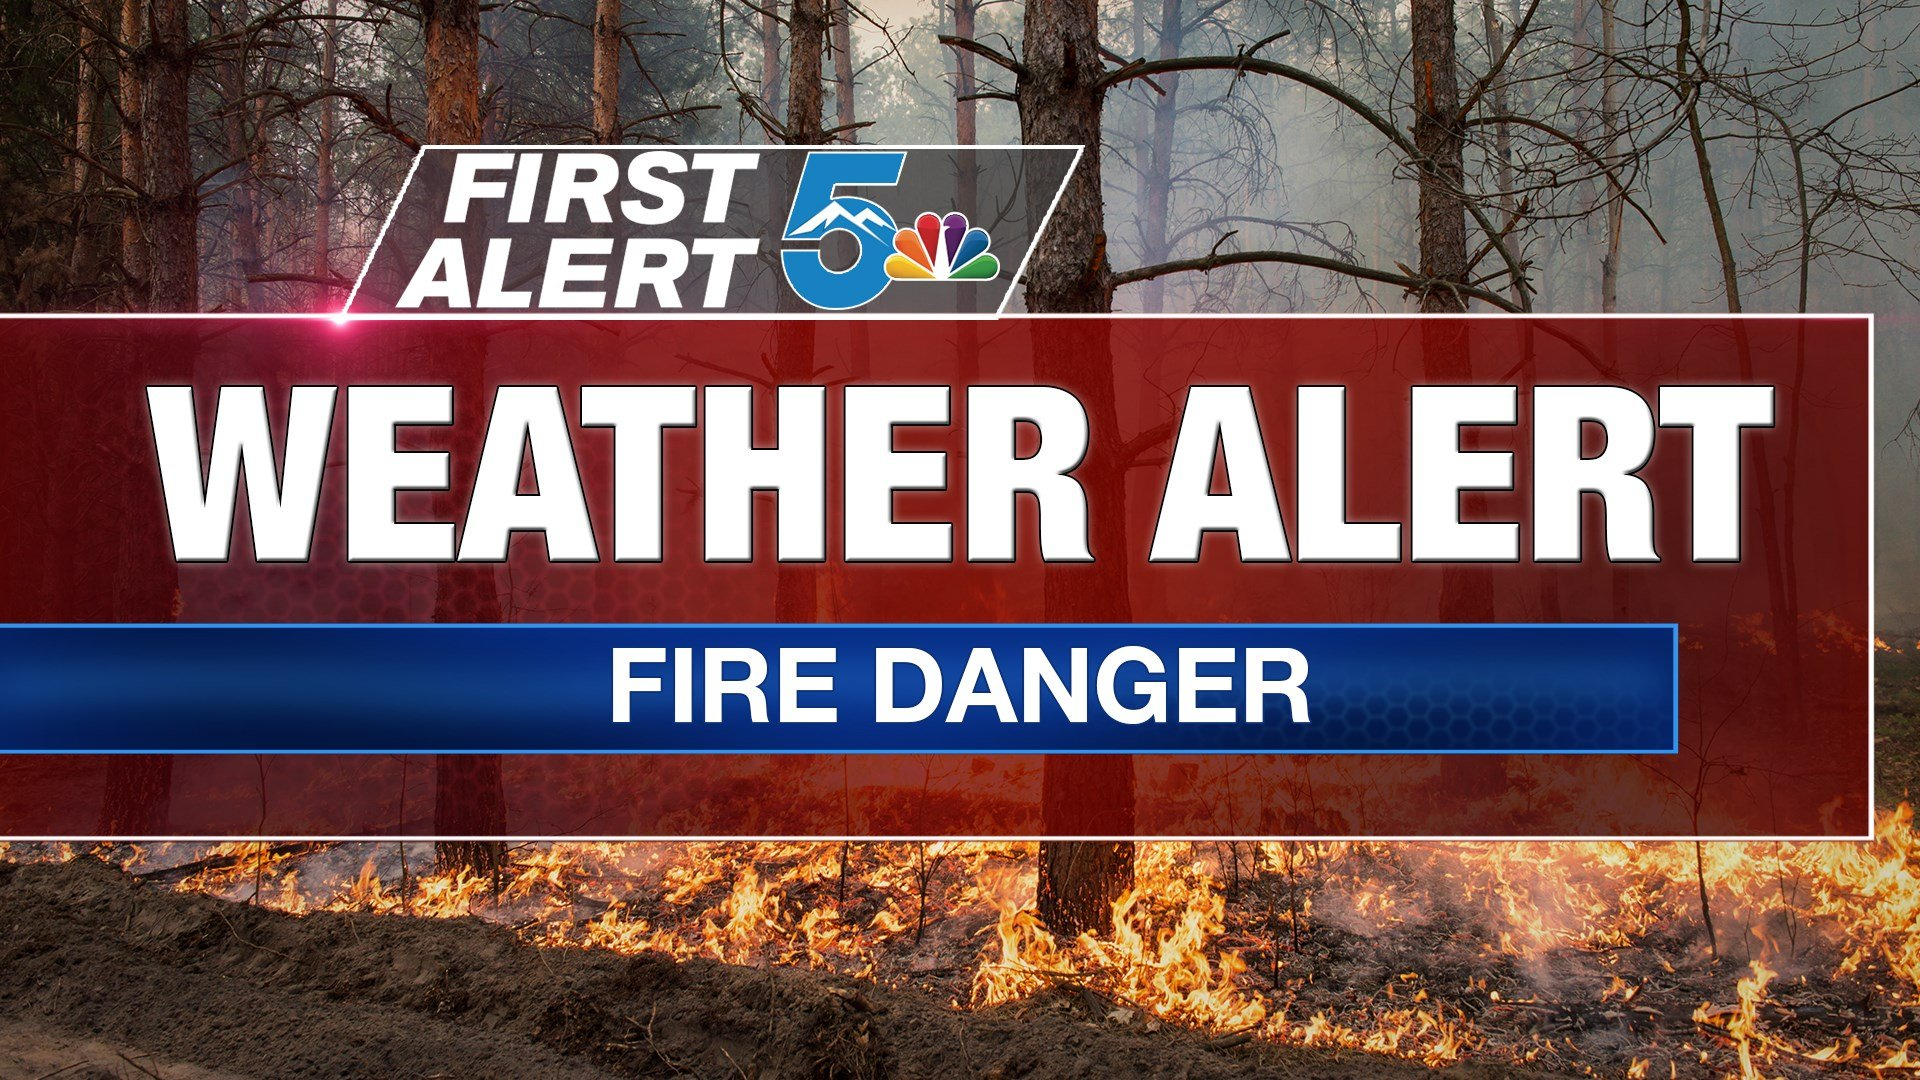 fire restrictions in effect for multiple counties koaa com